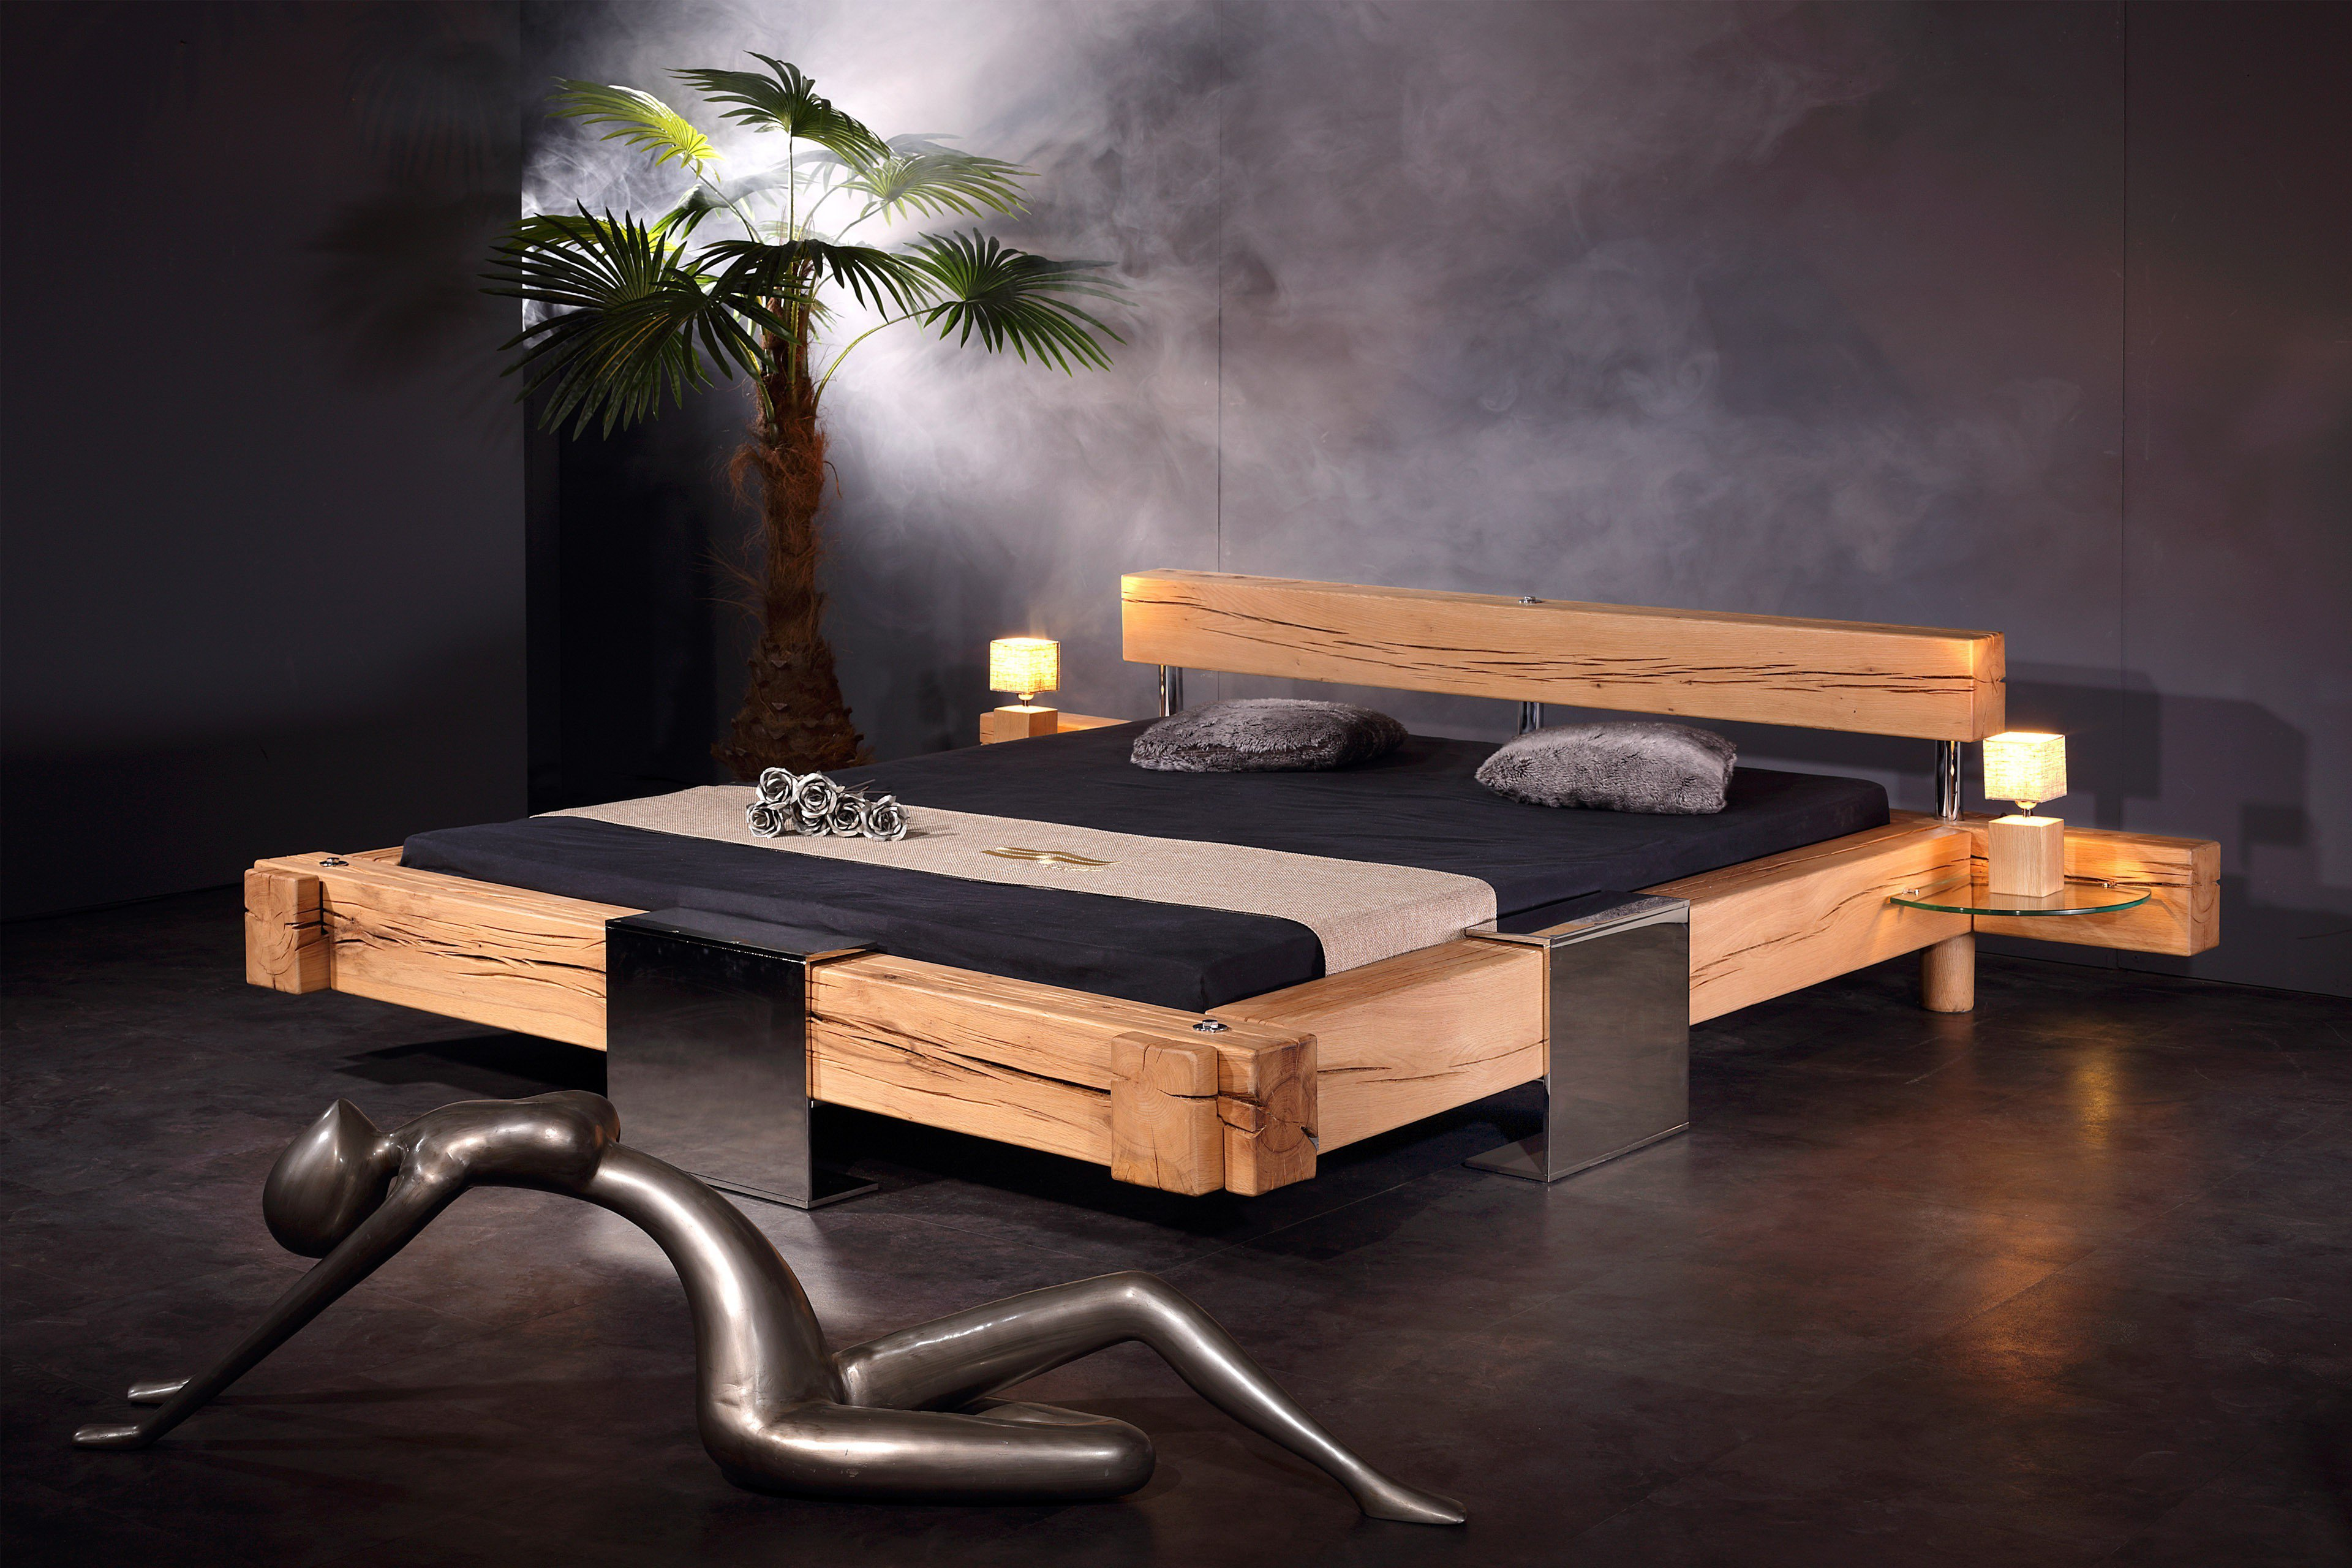 klotz bett sprenger bett sumpfeiche eisen m bel letz ihr online shop. Black Bedroom Furniture Sets. Home Design Ideas